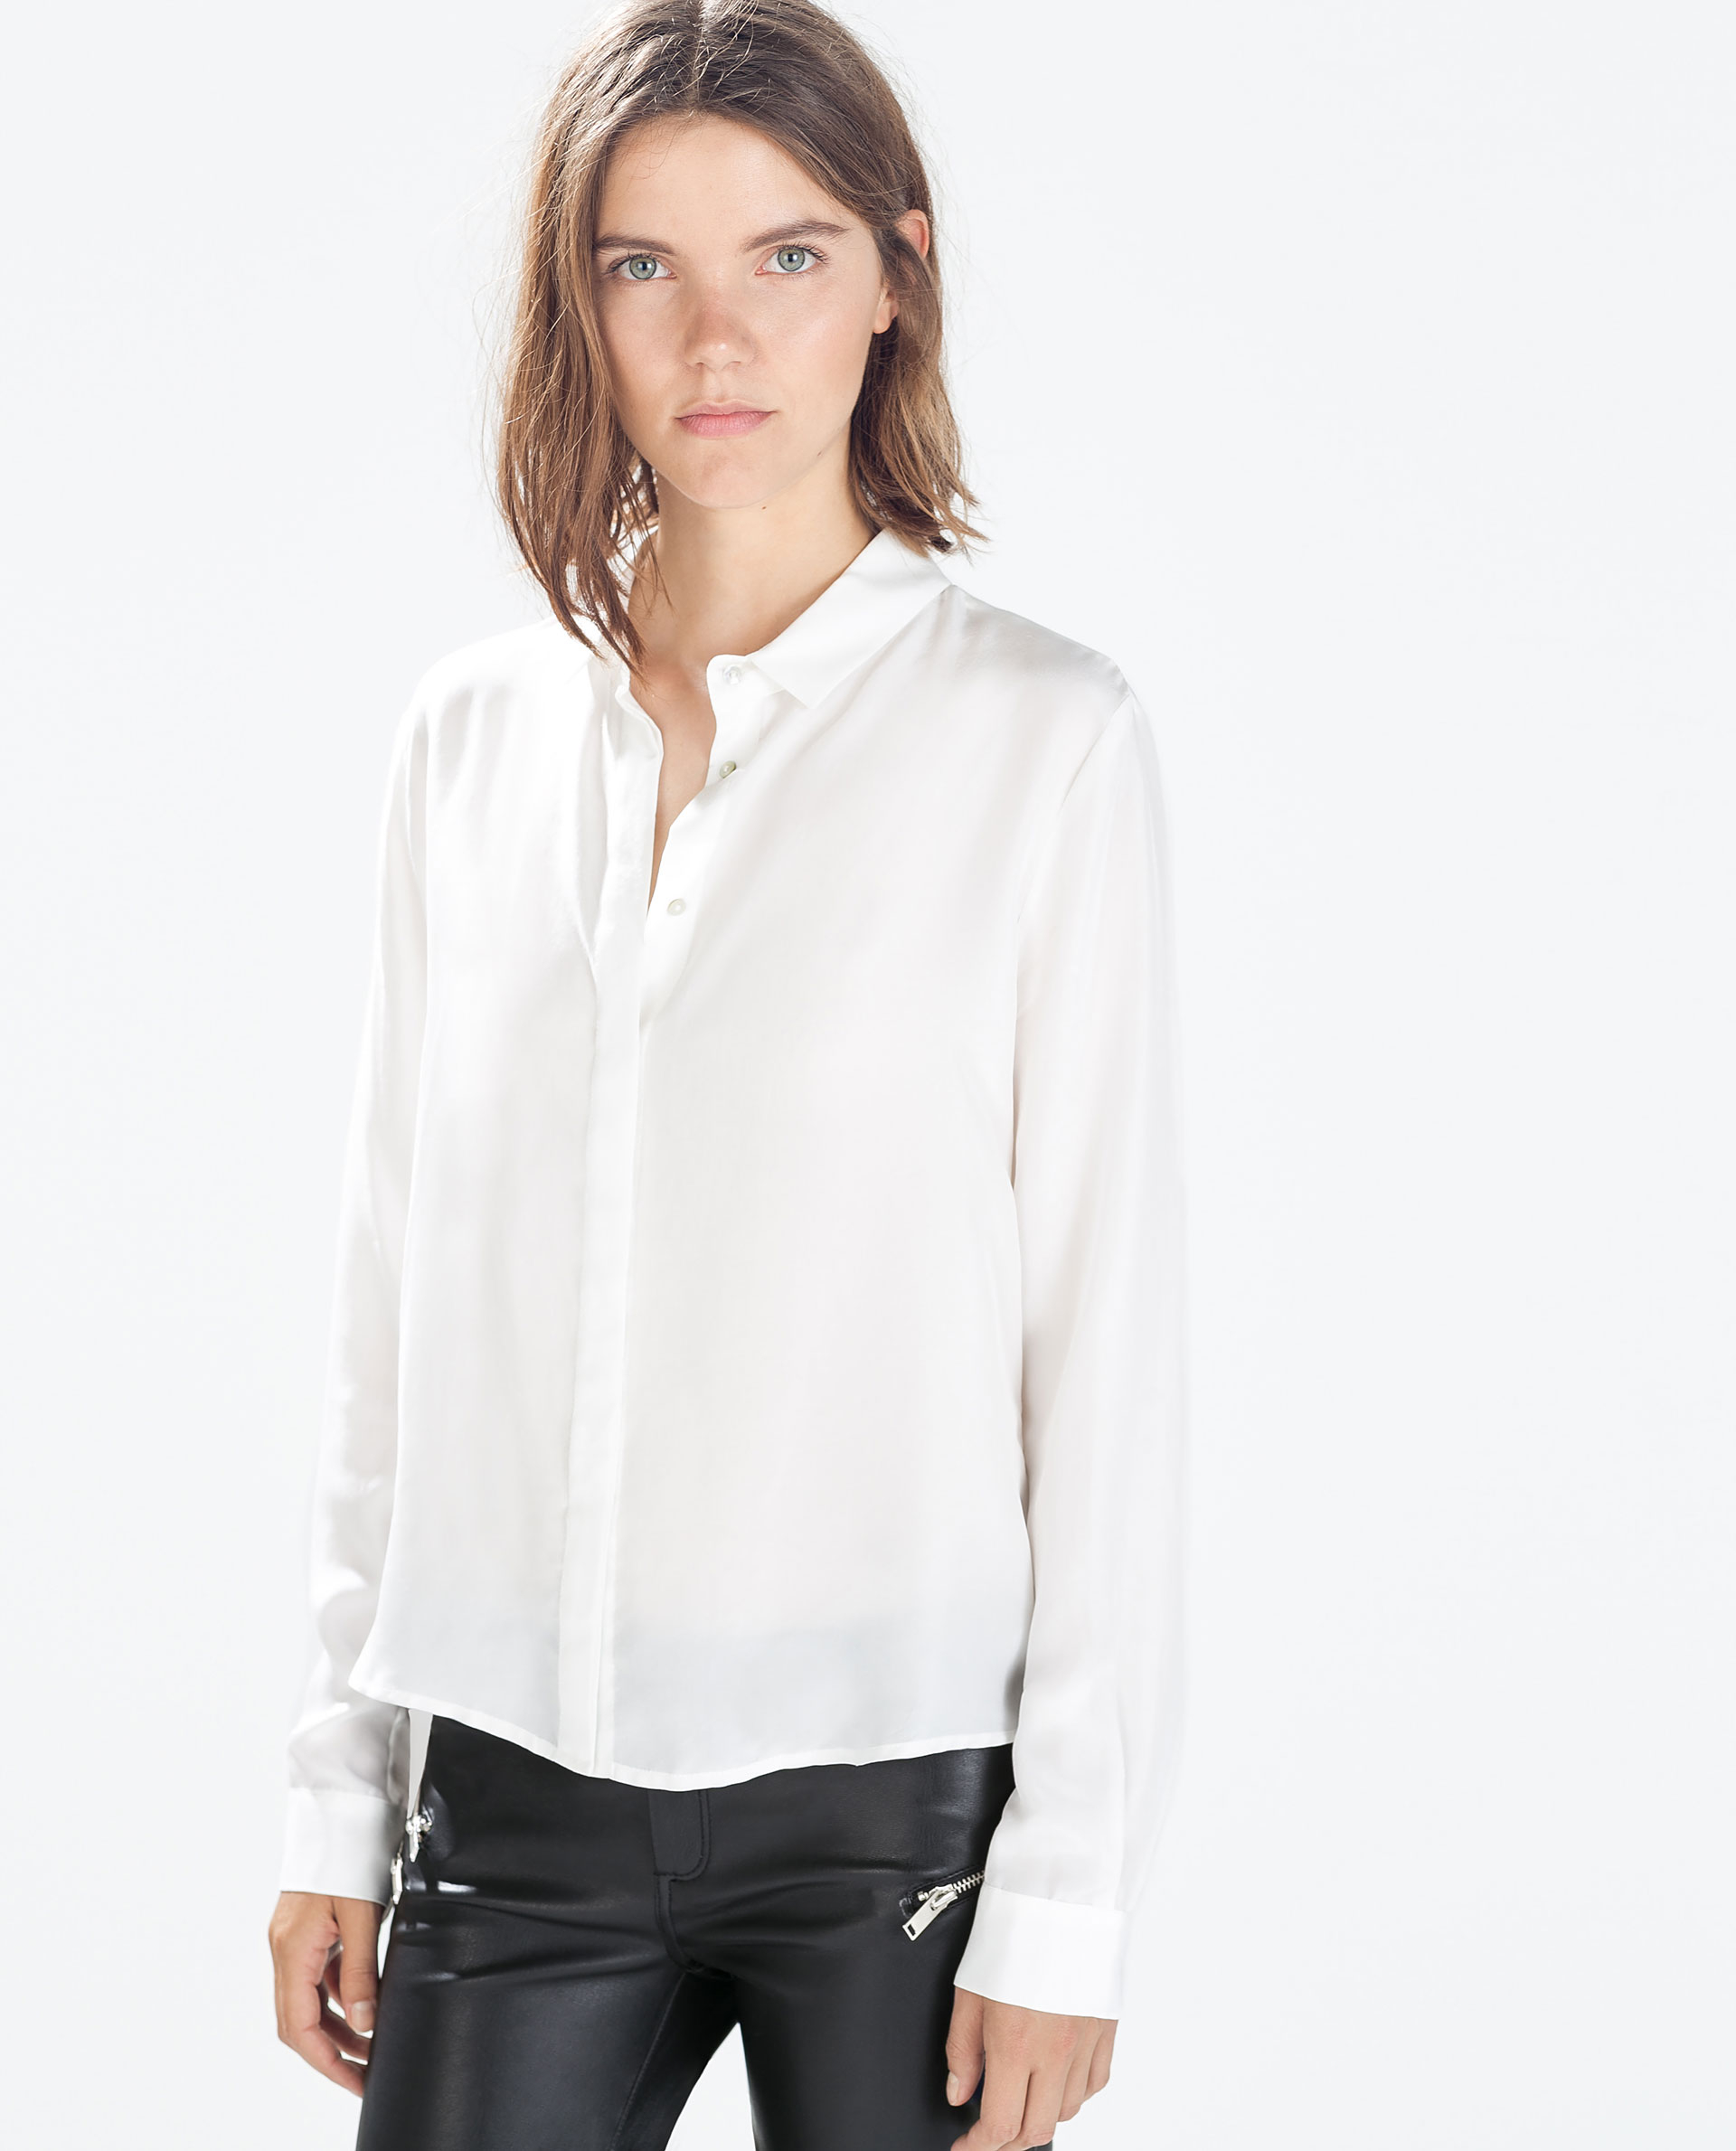 Zara White Silk Blouse 44